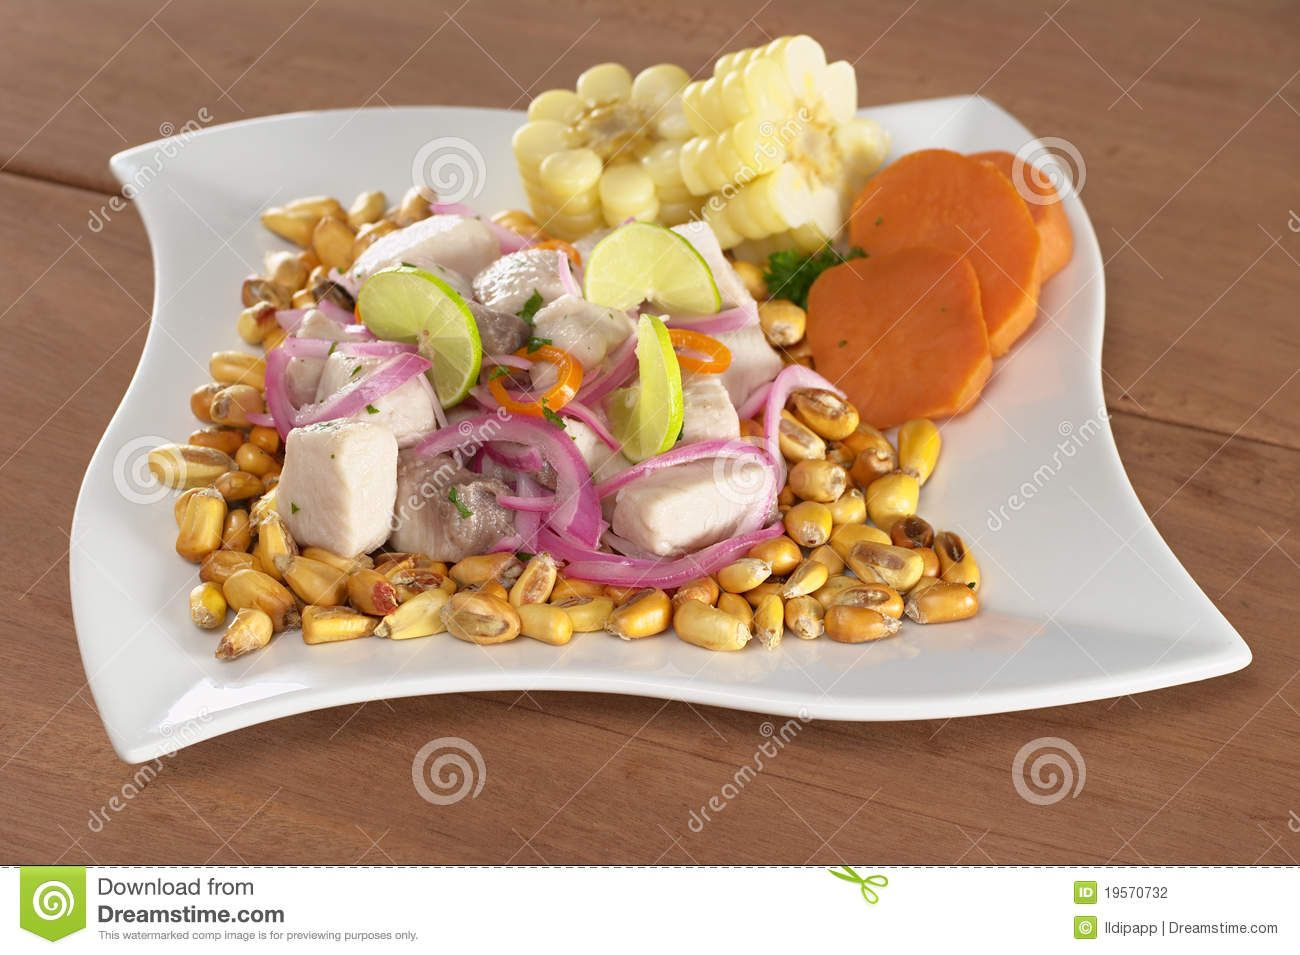 """Ceviche is one of the most traditional and most representative dishes of Peru.  Preparared with fresh fish, limes, onions, spicy peppers, and fresh cilantro. Cebiche, usually consists of seafood that is marinated with lime juice, the acidity of the lime juice actually """"cooks"""" the seafood."""